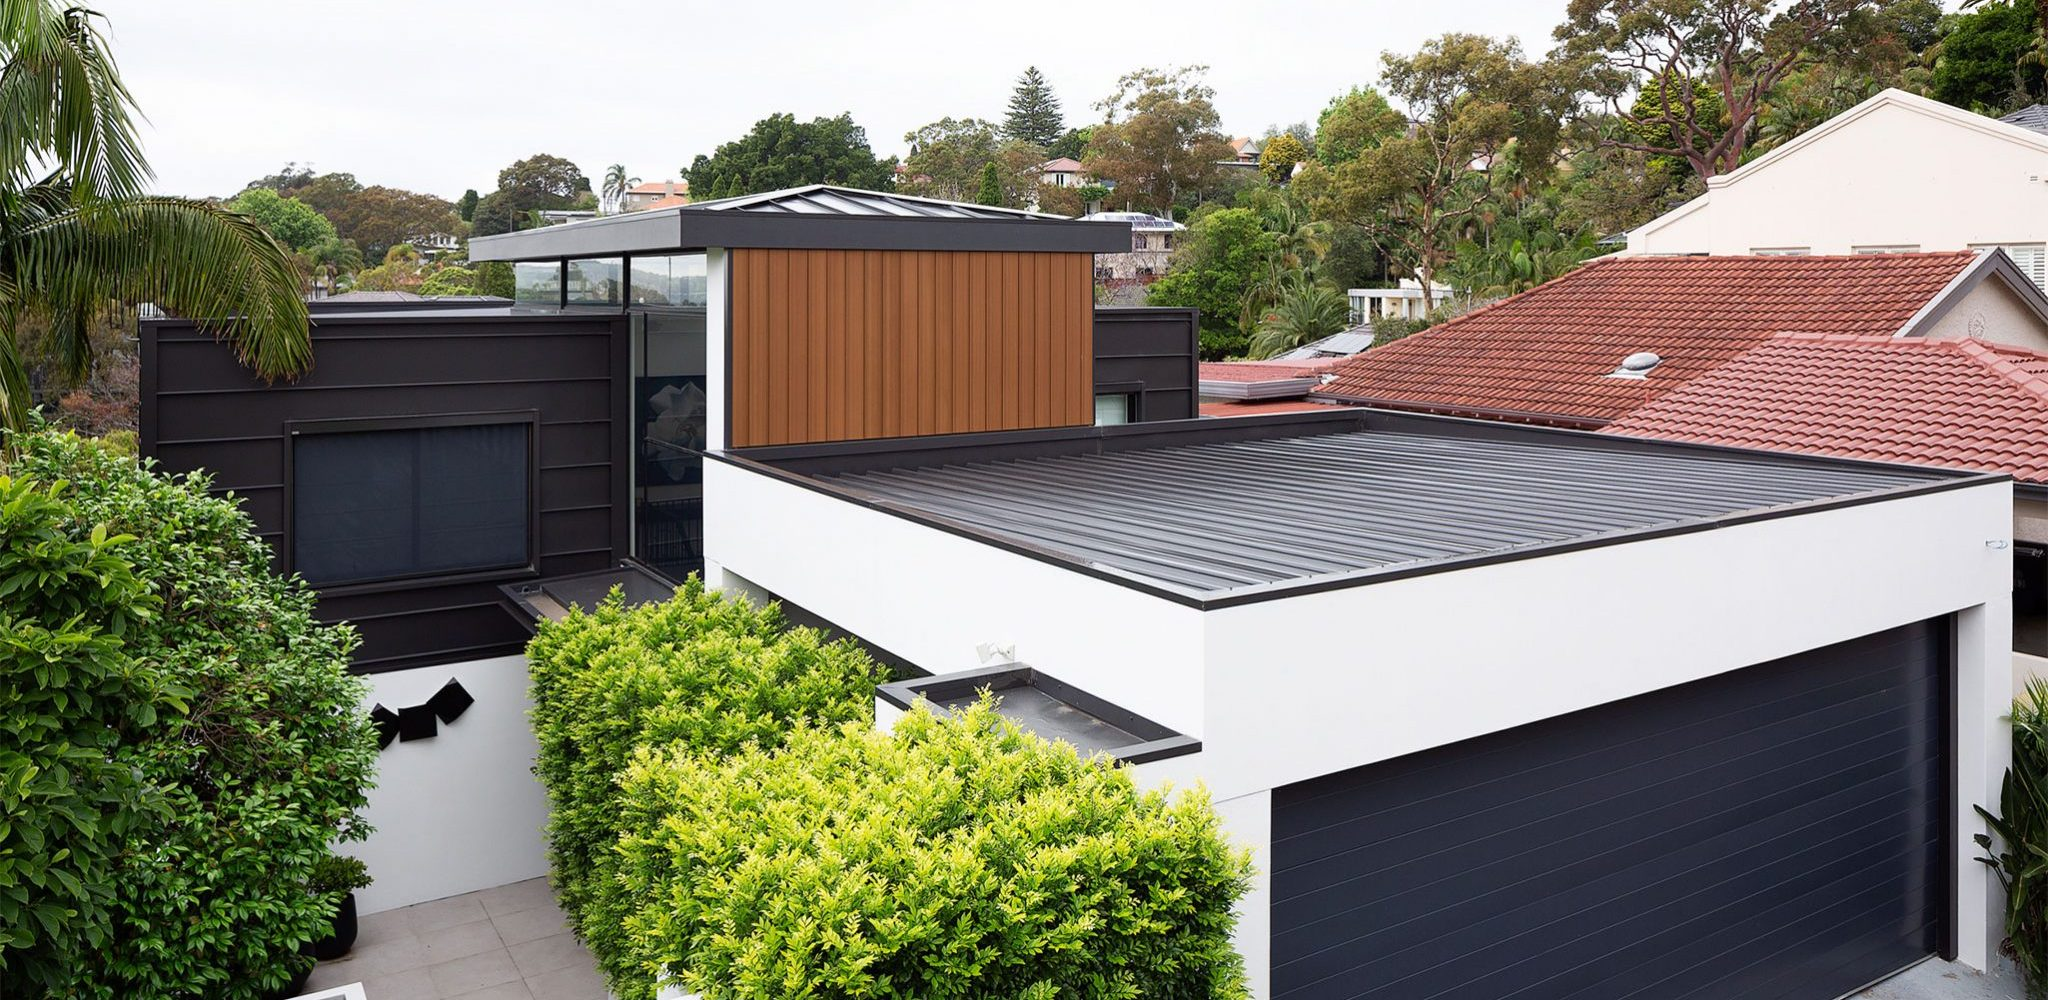 Hookys-Roofing_MetalRoof&Cladding01